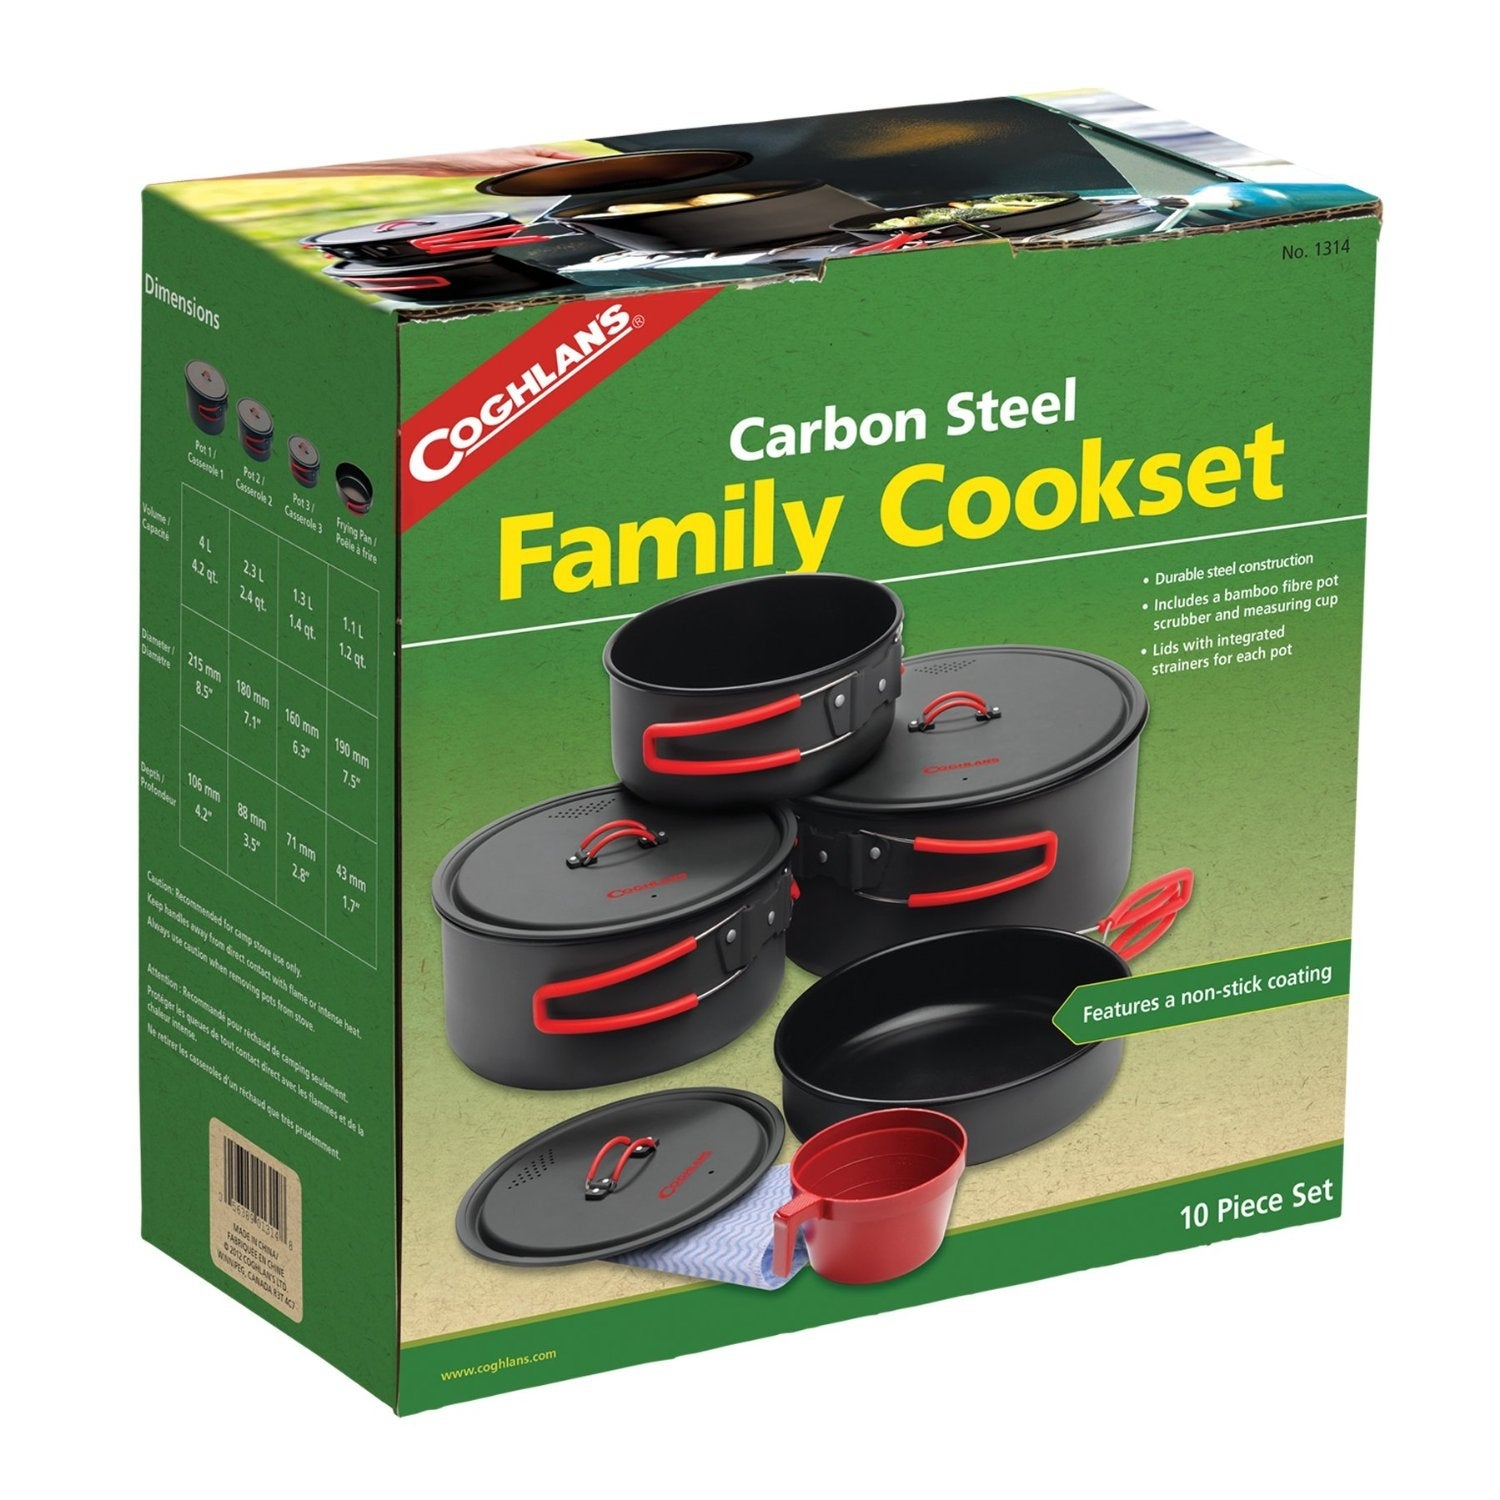 5b04a64c93 Shop Coghlan's 1314 Non-Stick Family Cook Set, Steel, 10-Pieces - Free  Shipping Today - Overstock - 17085629